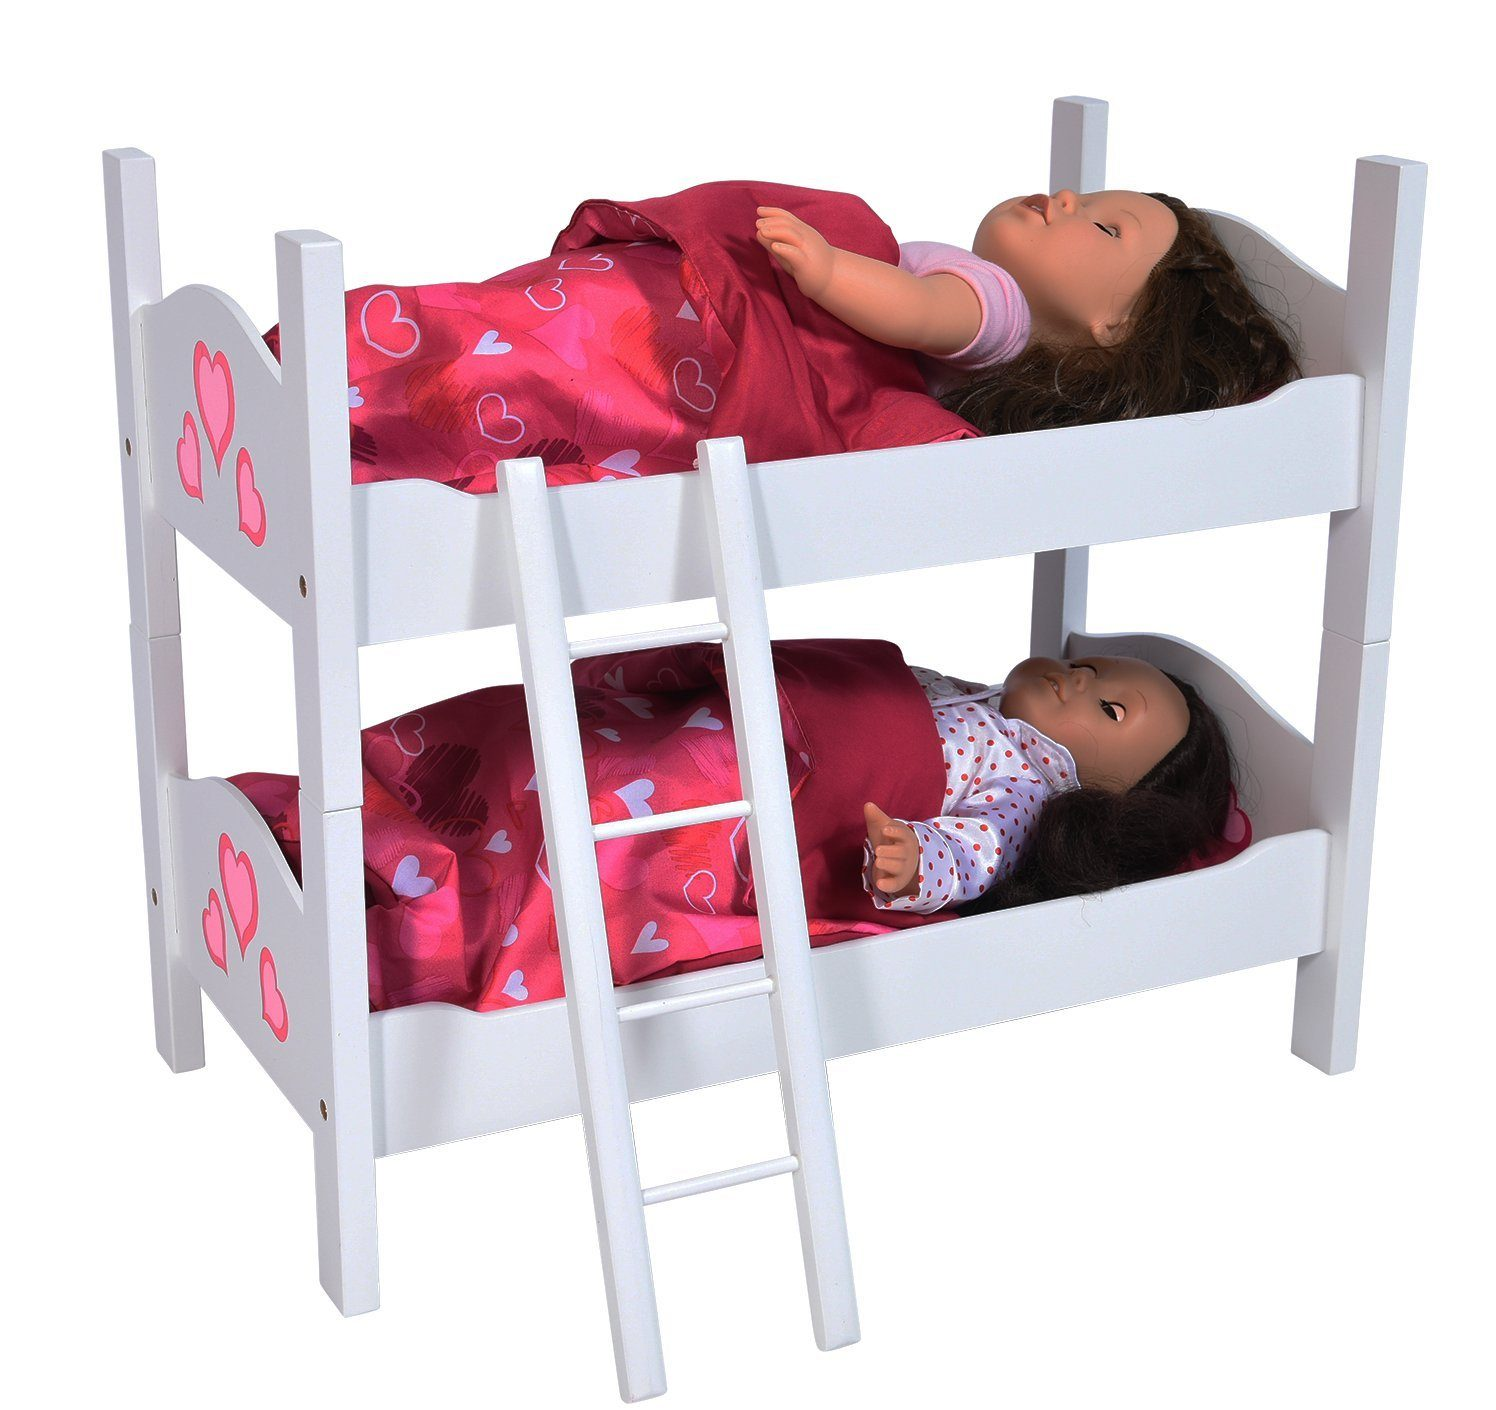 What To Do With Rv Bunk Beds Innocents Adrift